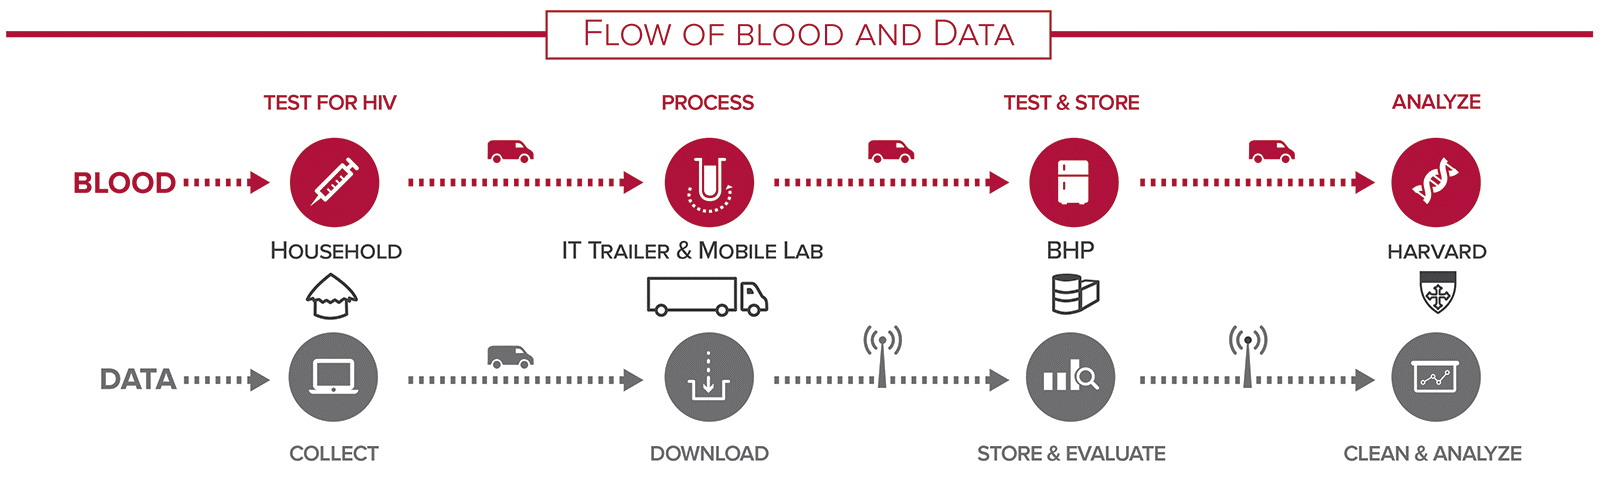 Figure 2. Flow of information from the first test of HIV to cleaning and analyzing the data.